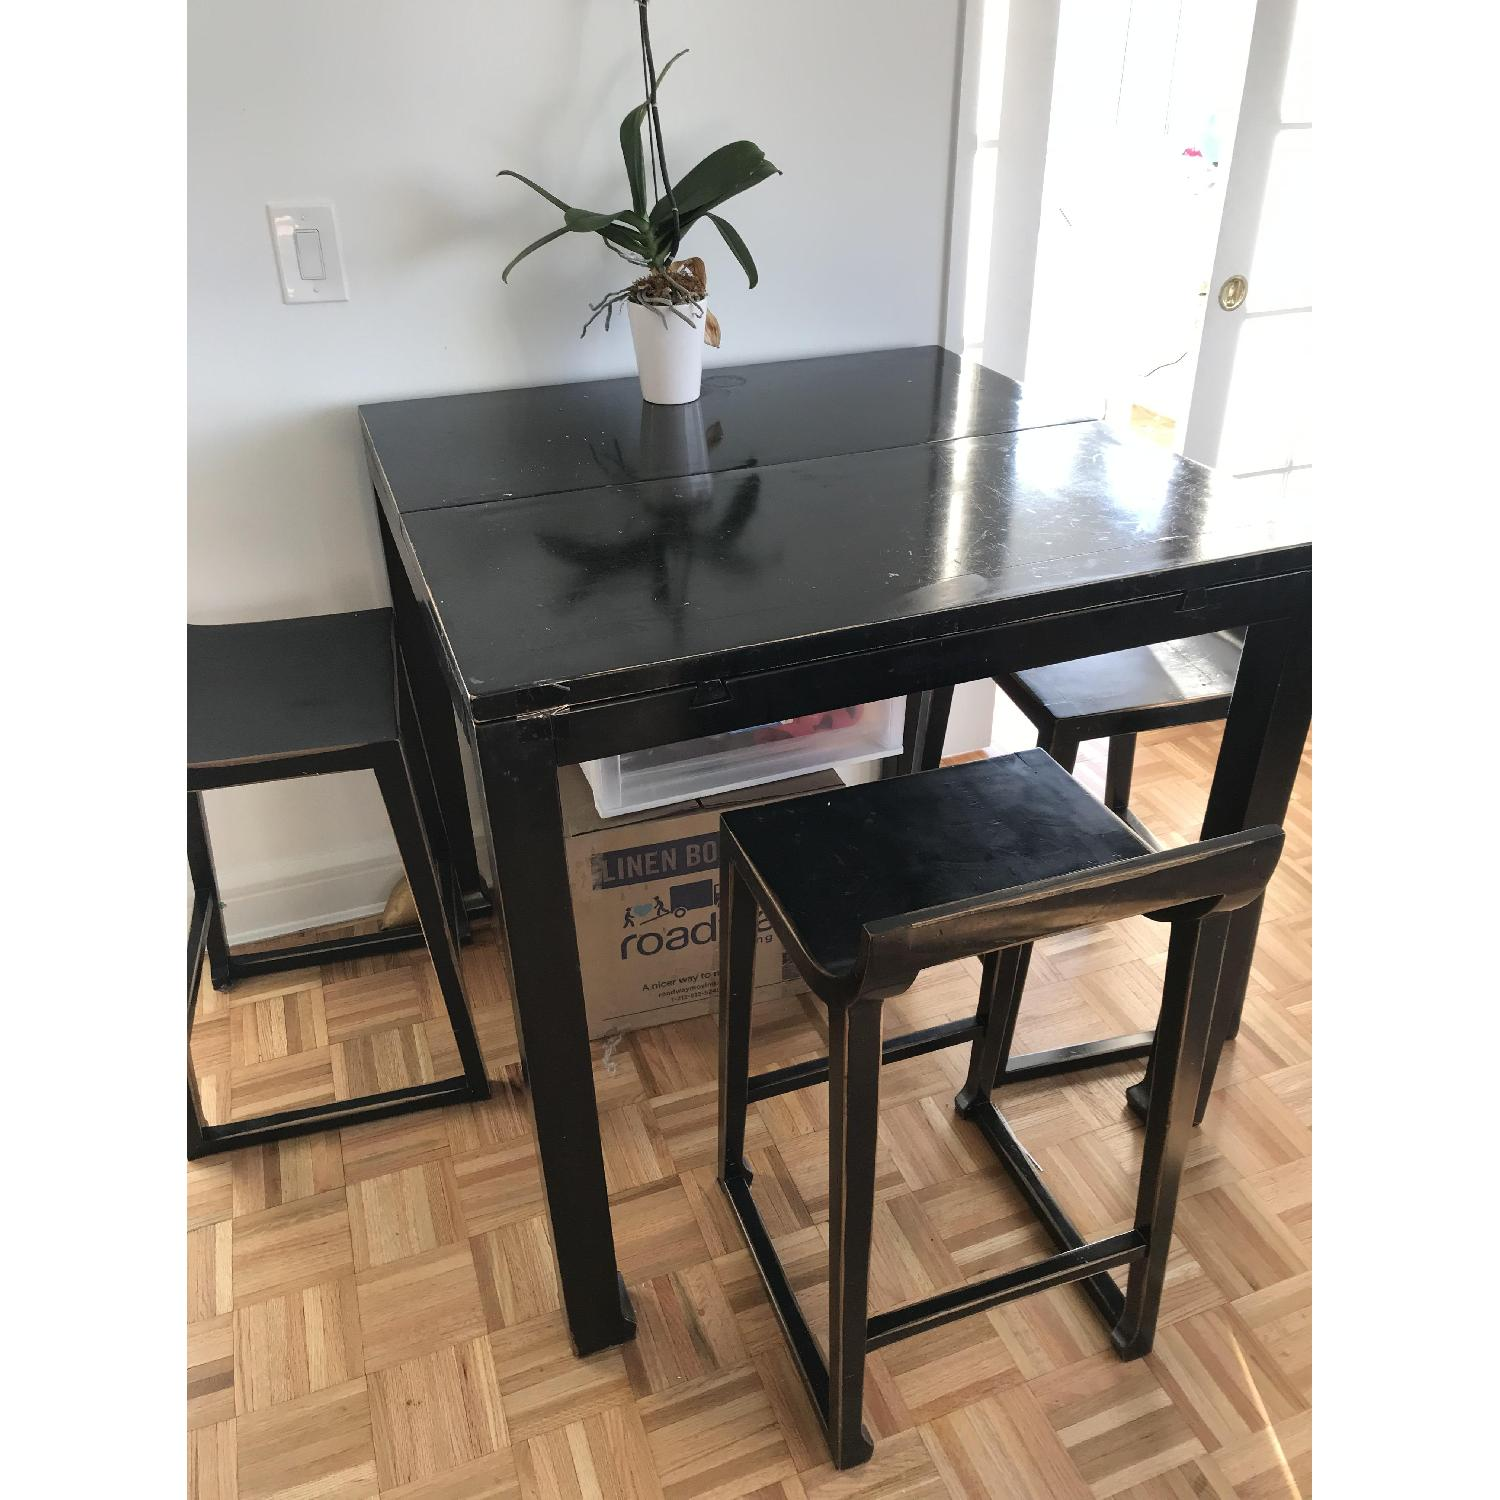 Selfridges Foldable Lacquered Black Table w/ 4 Chairs-0